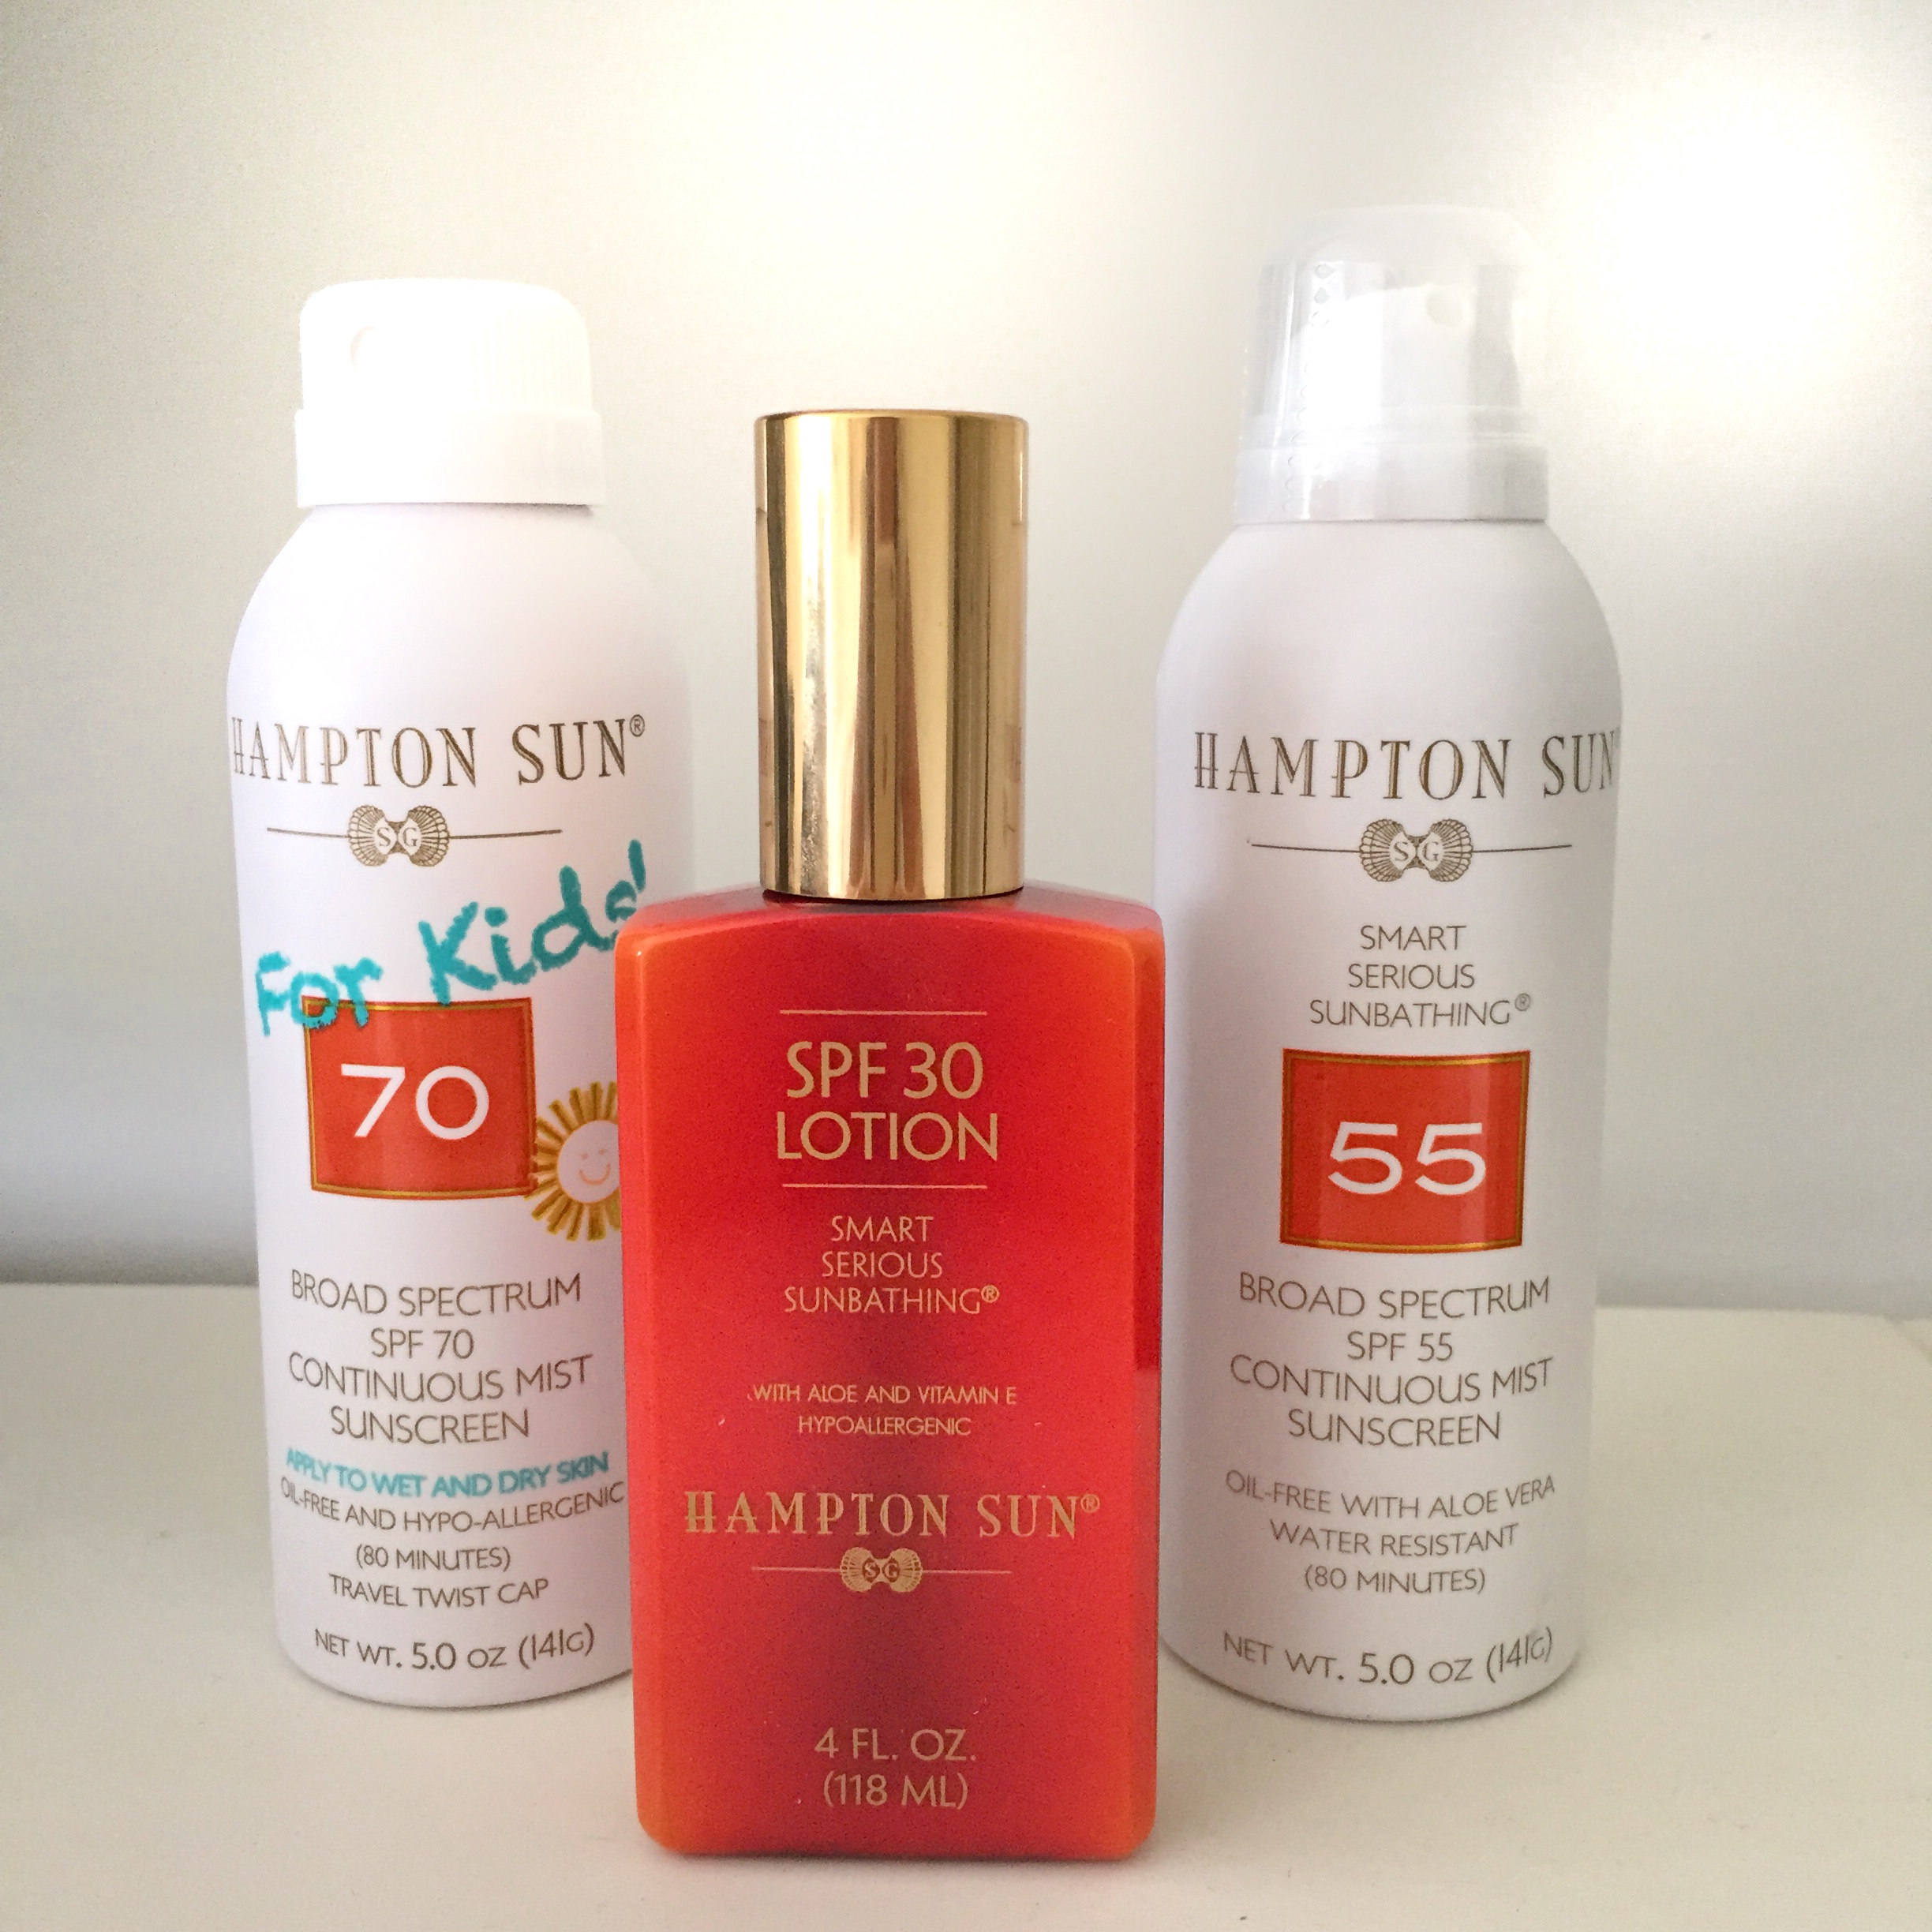 SPF 70 For Kids ($32) SPF Continuous Mist ($32) and SPF 30 Lotion ($36)    Hampton Sun